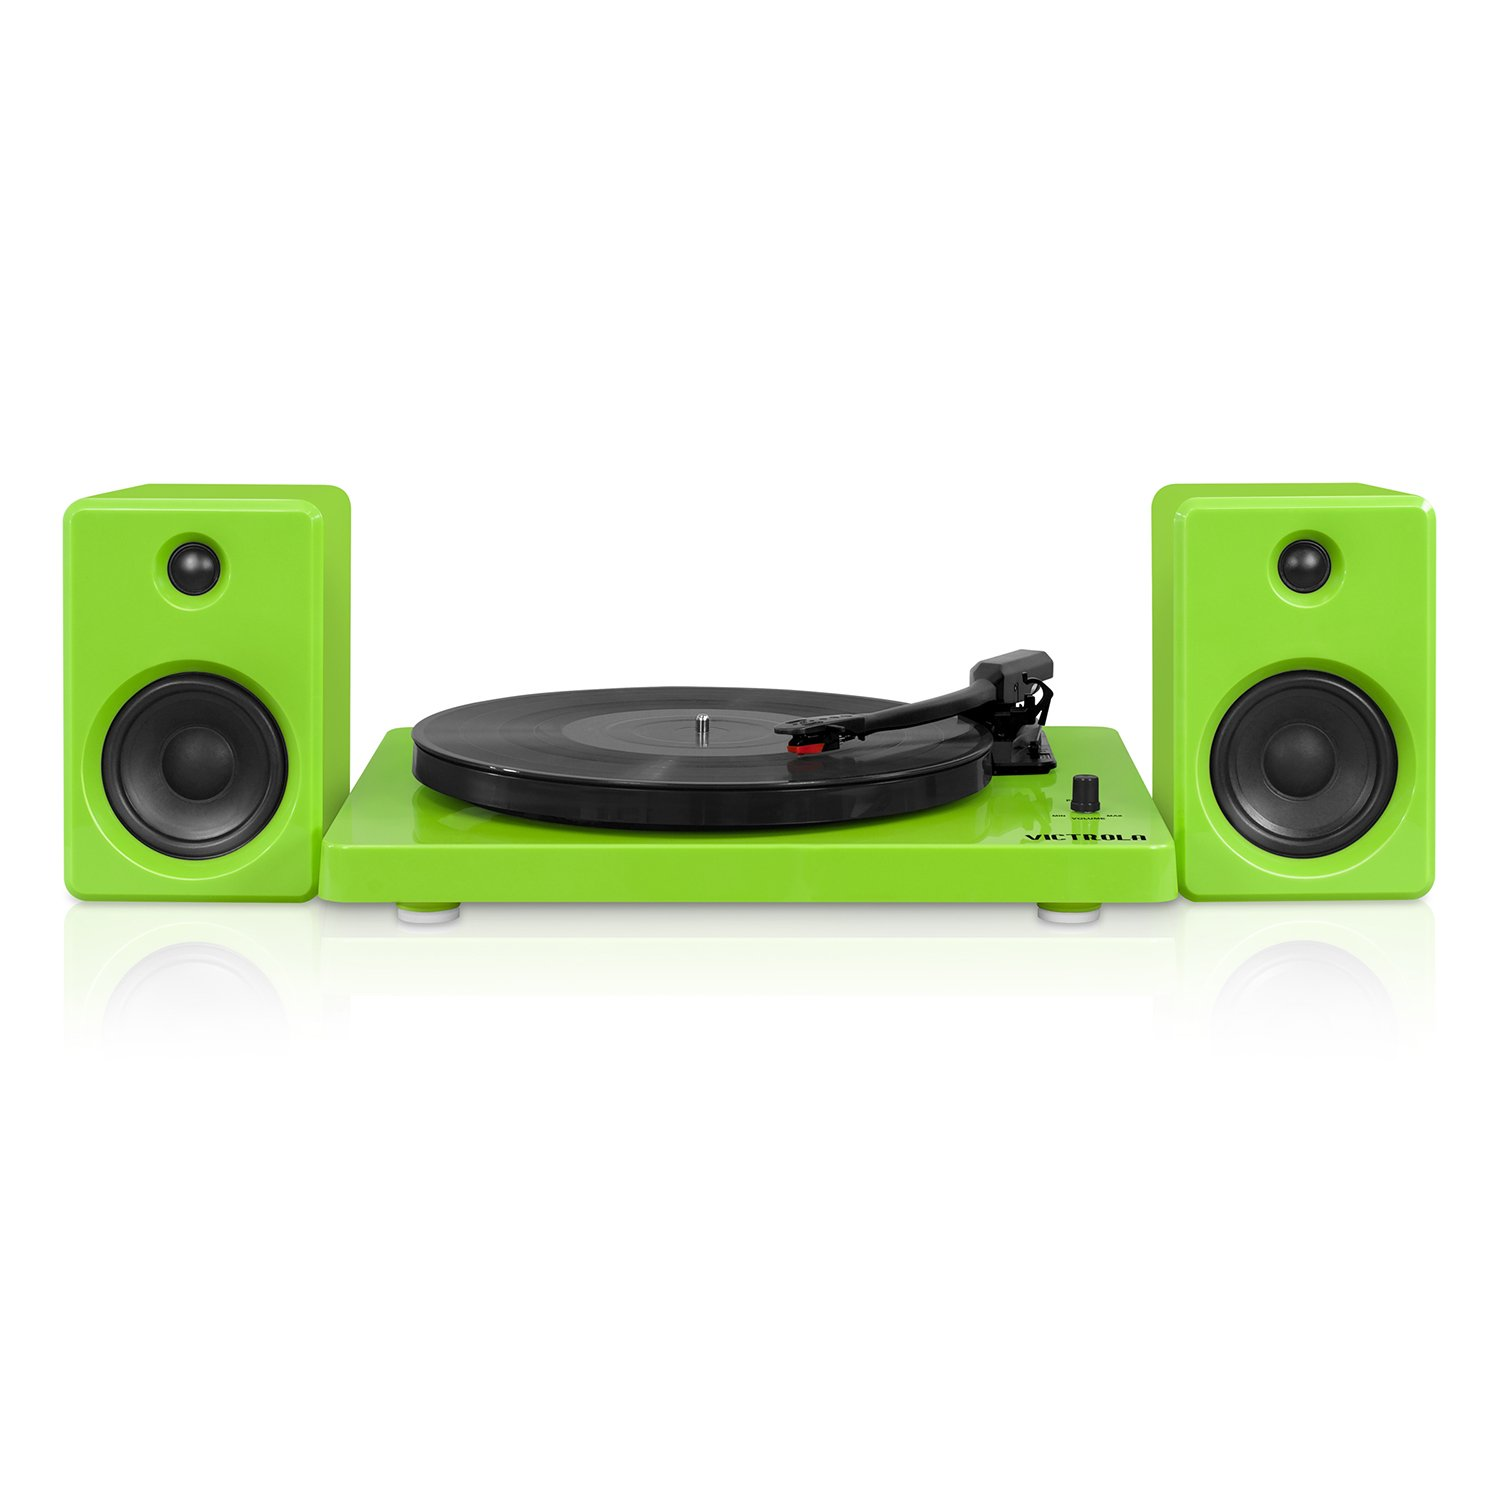 Victrola Modern 3-Speed Bluetooth Turntable with 50 Watt Speakers, Green Piano Finish